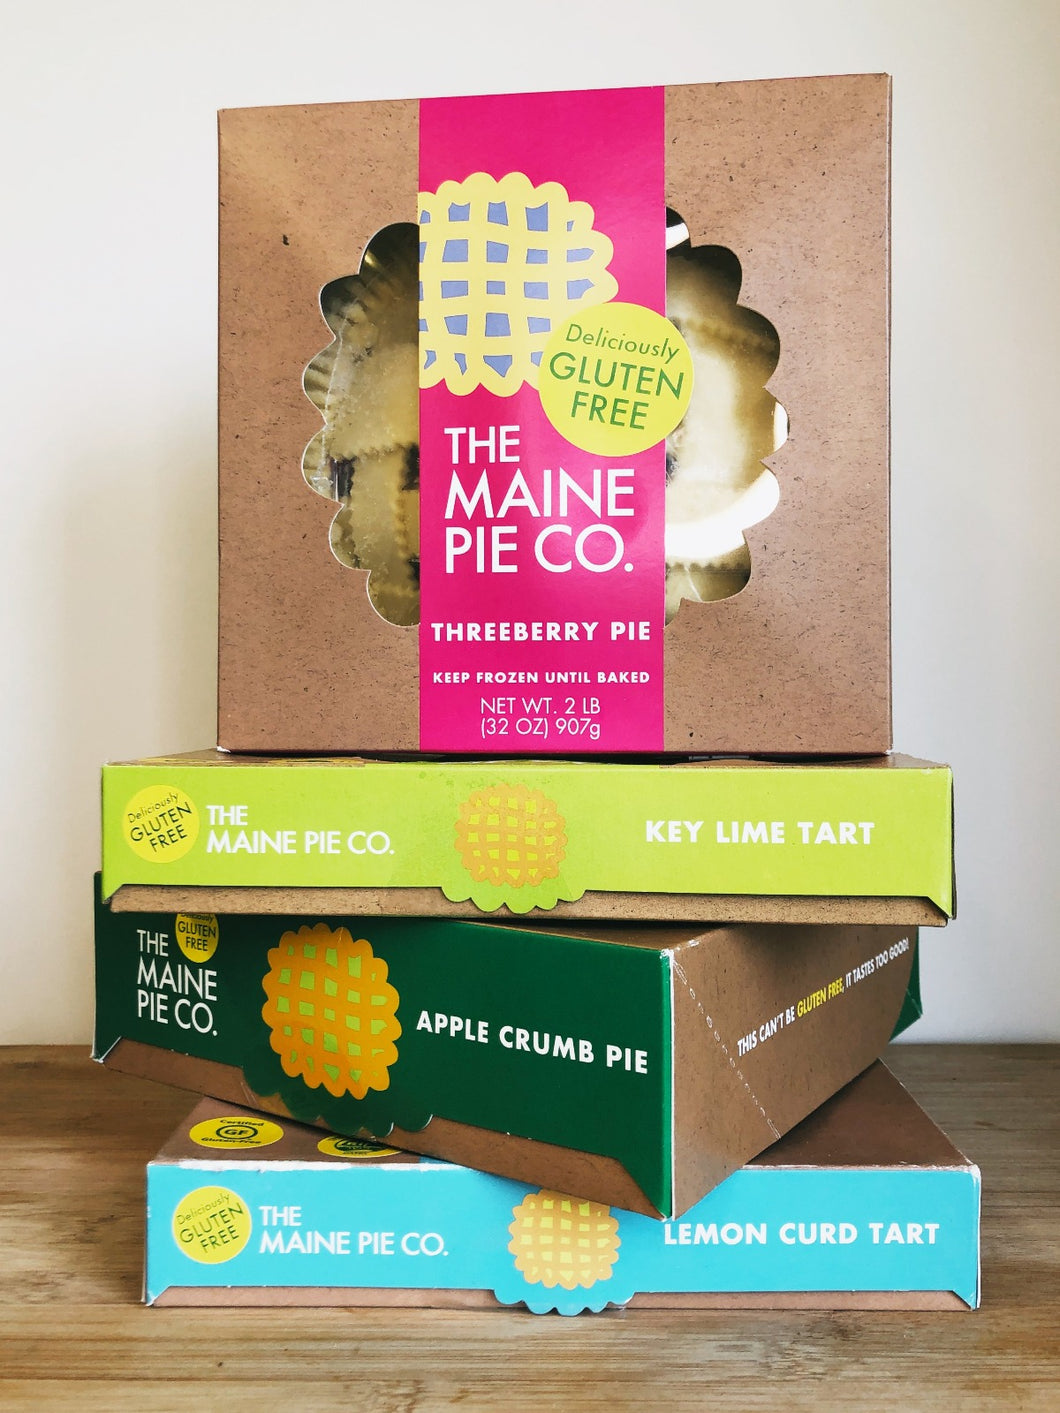 Pies & Tarts, Gluten Free (Maine Pie Co.)